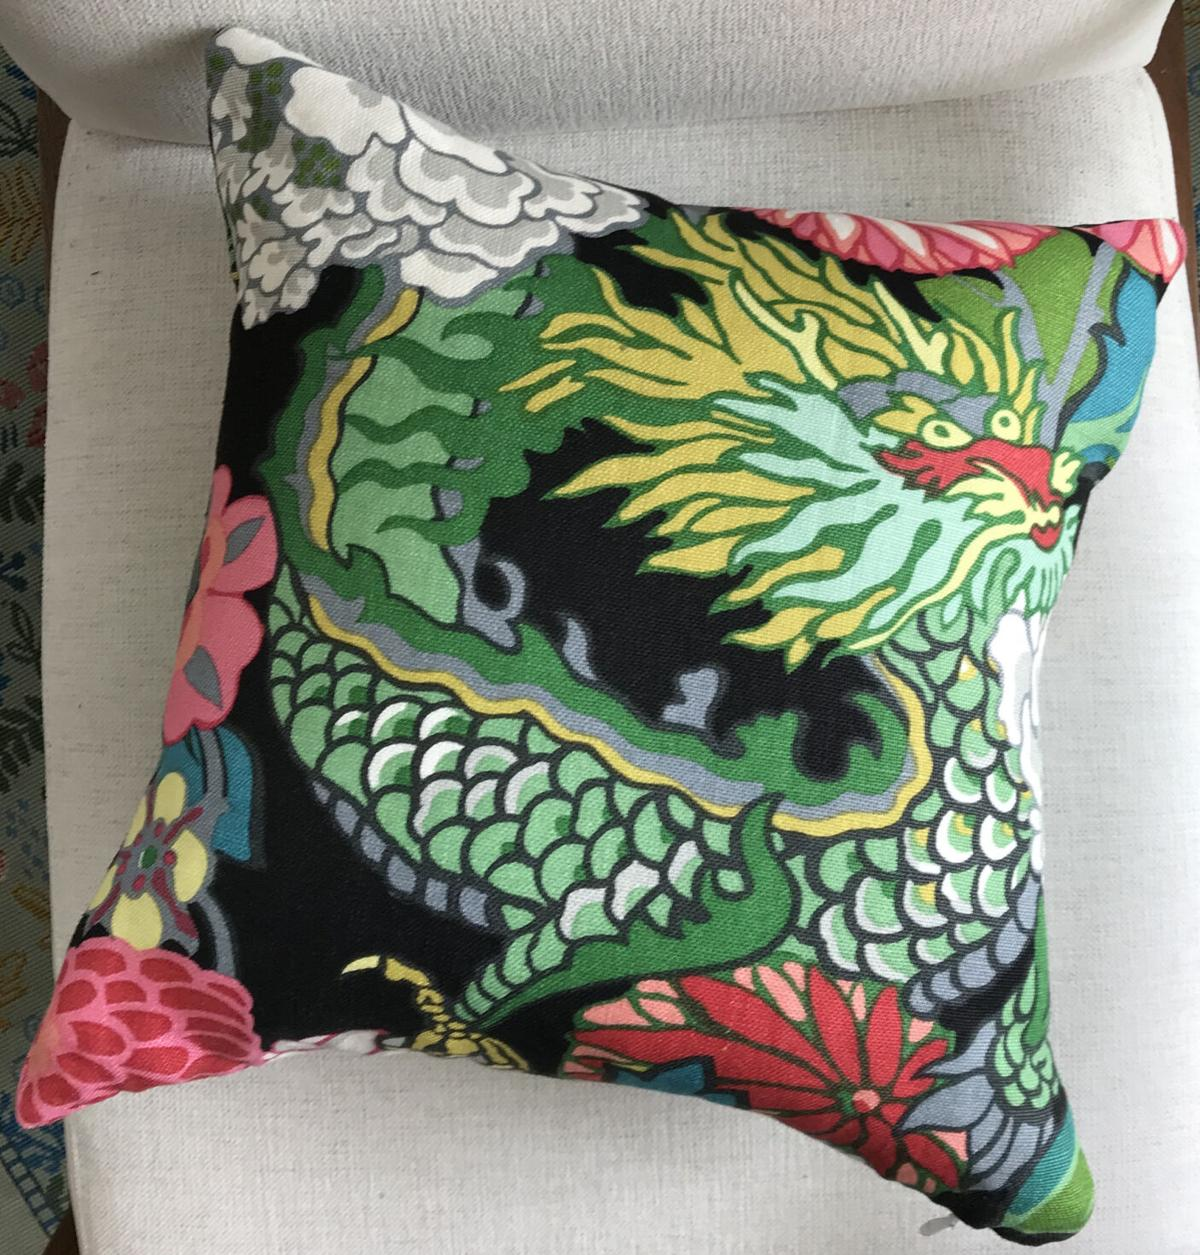 COOL PILLOWS dragon pillow perch jpg.jpg